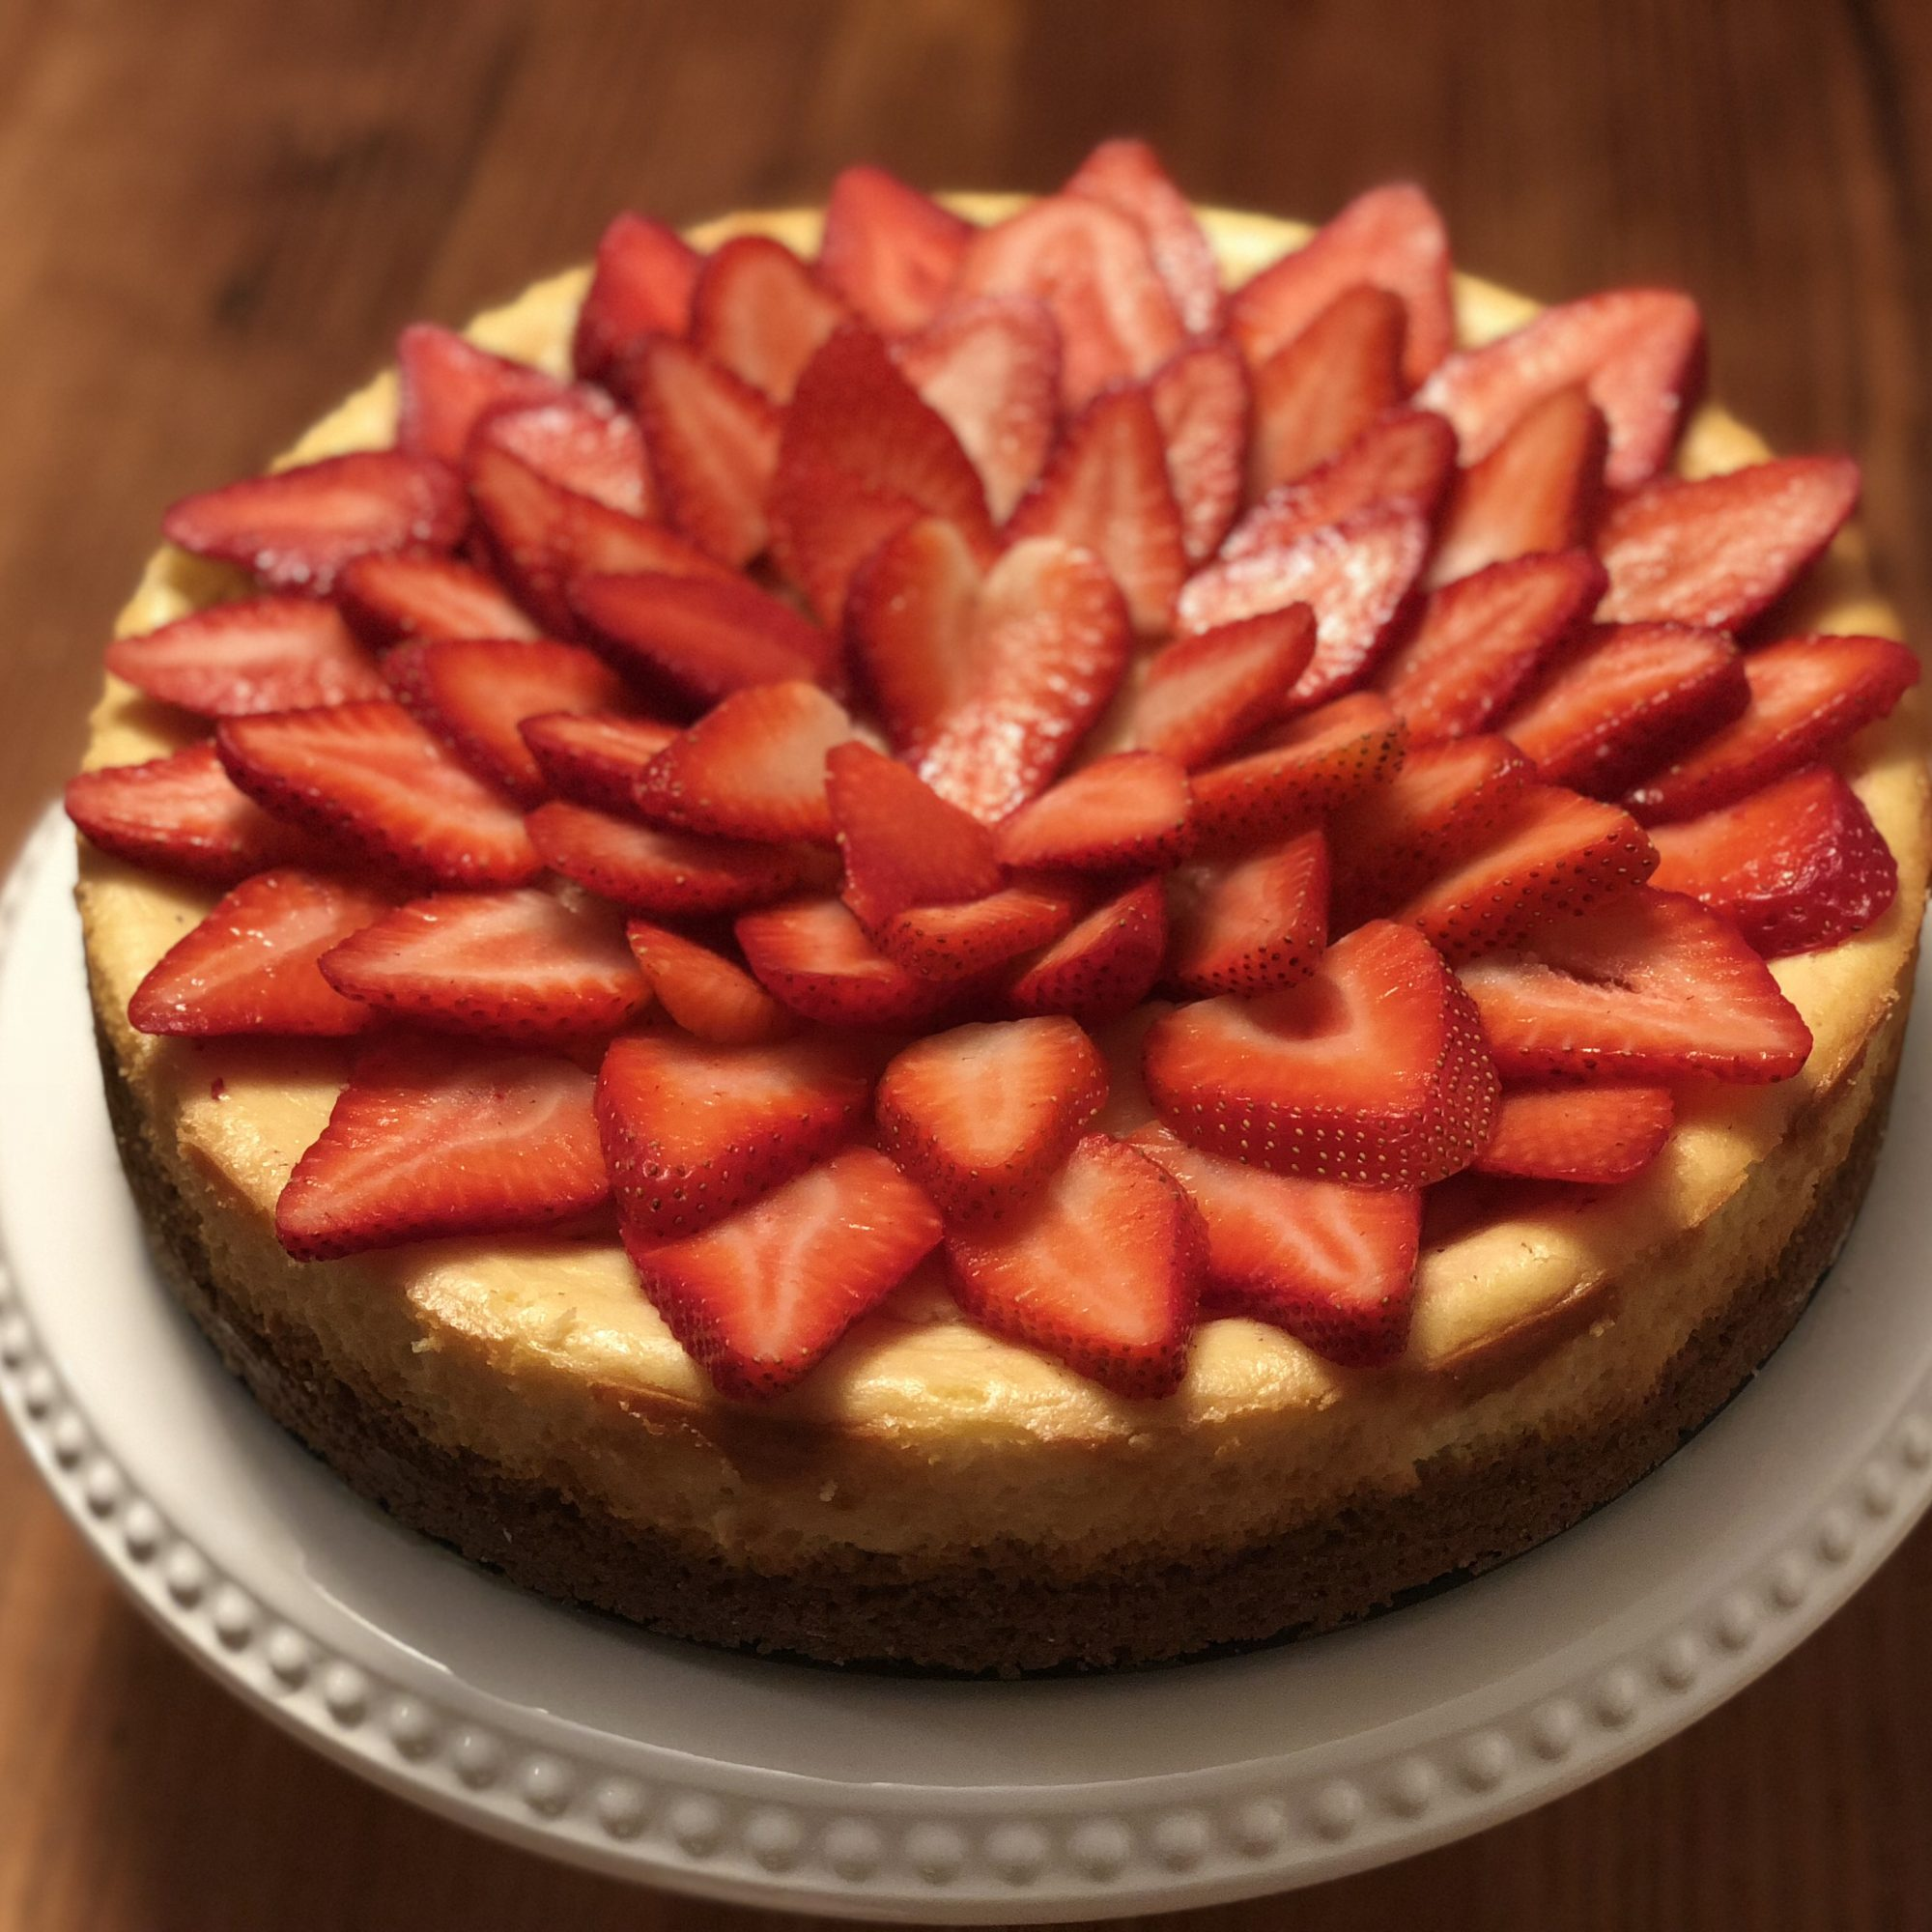 cheesecake with strawberries on top